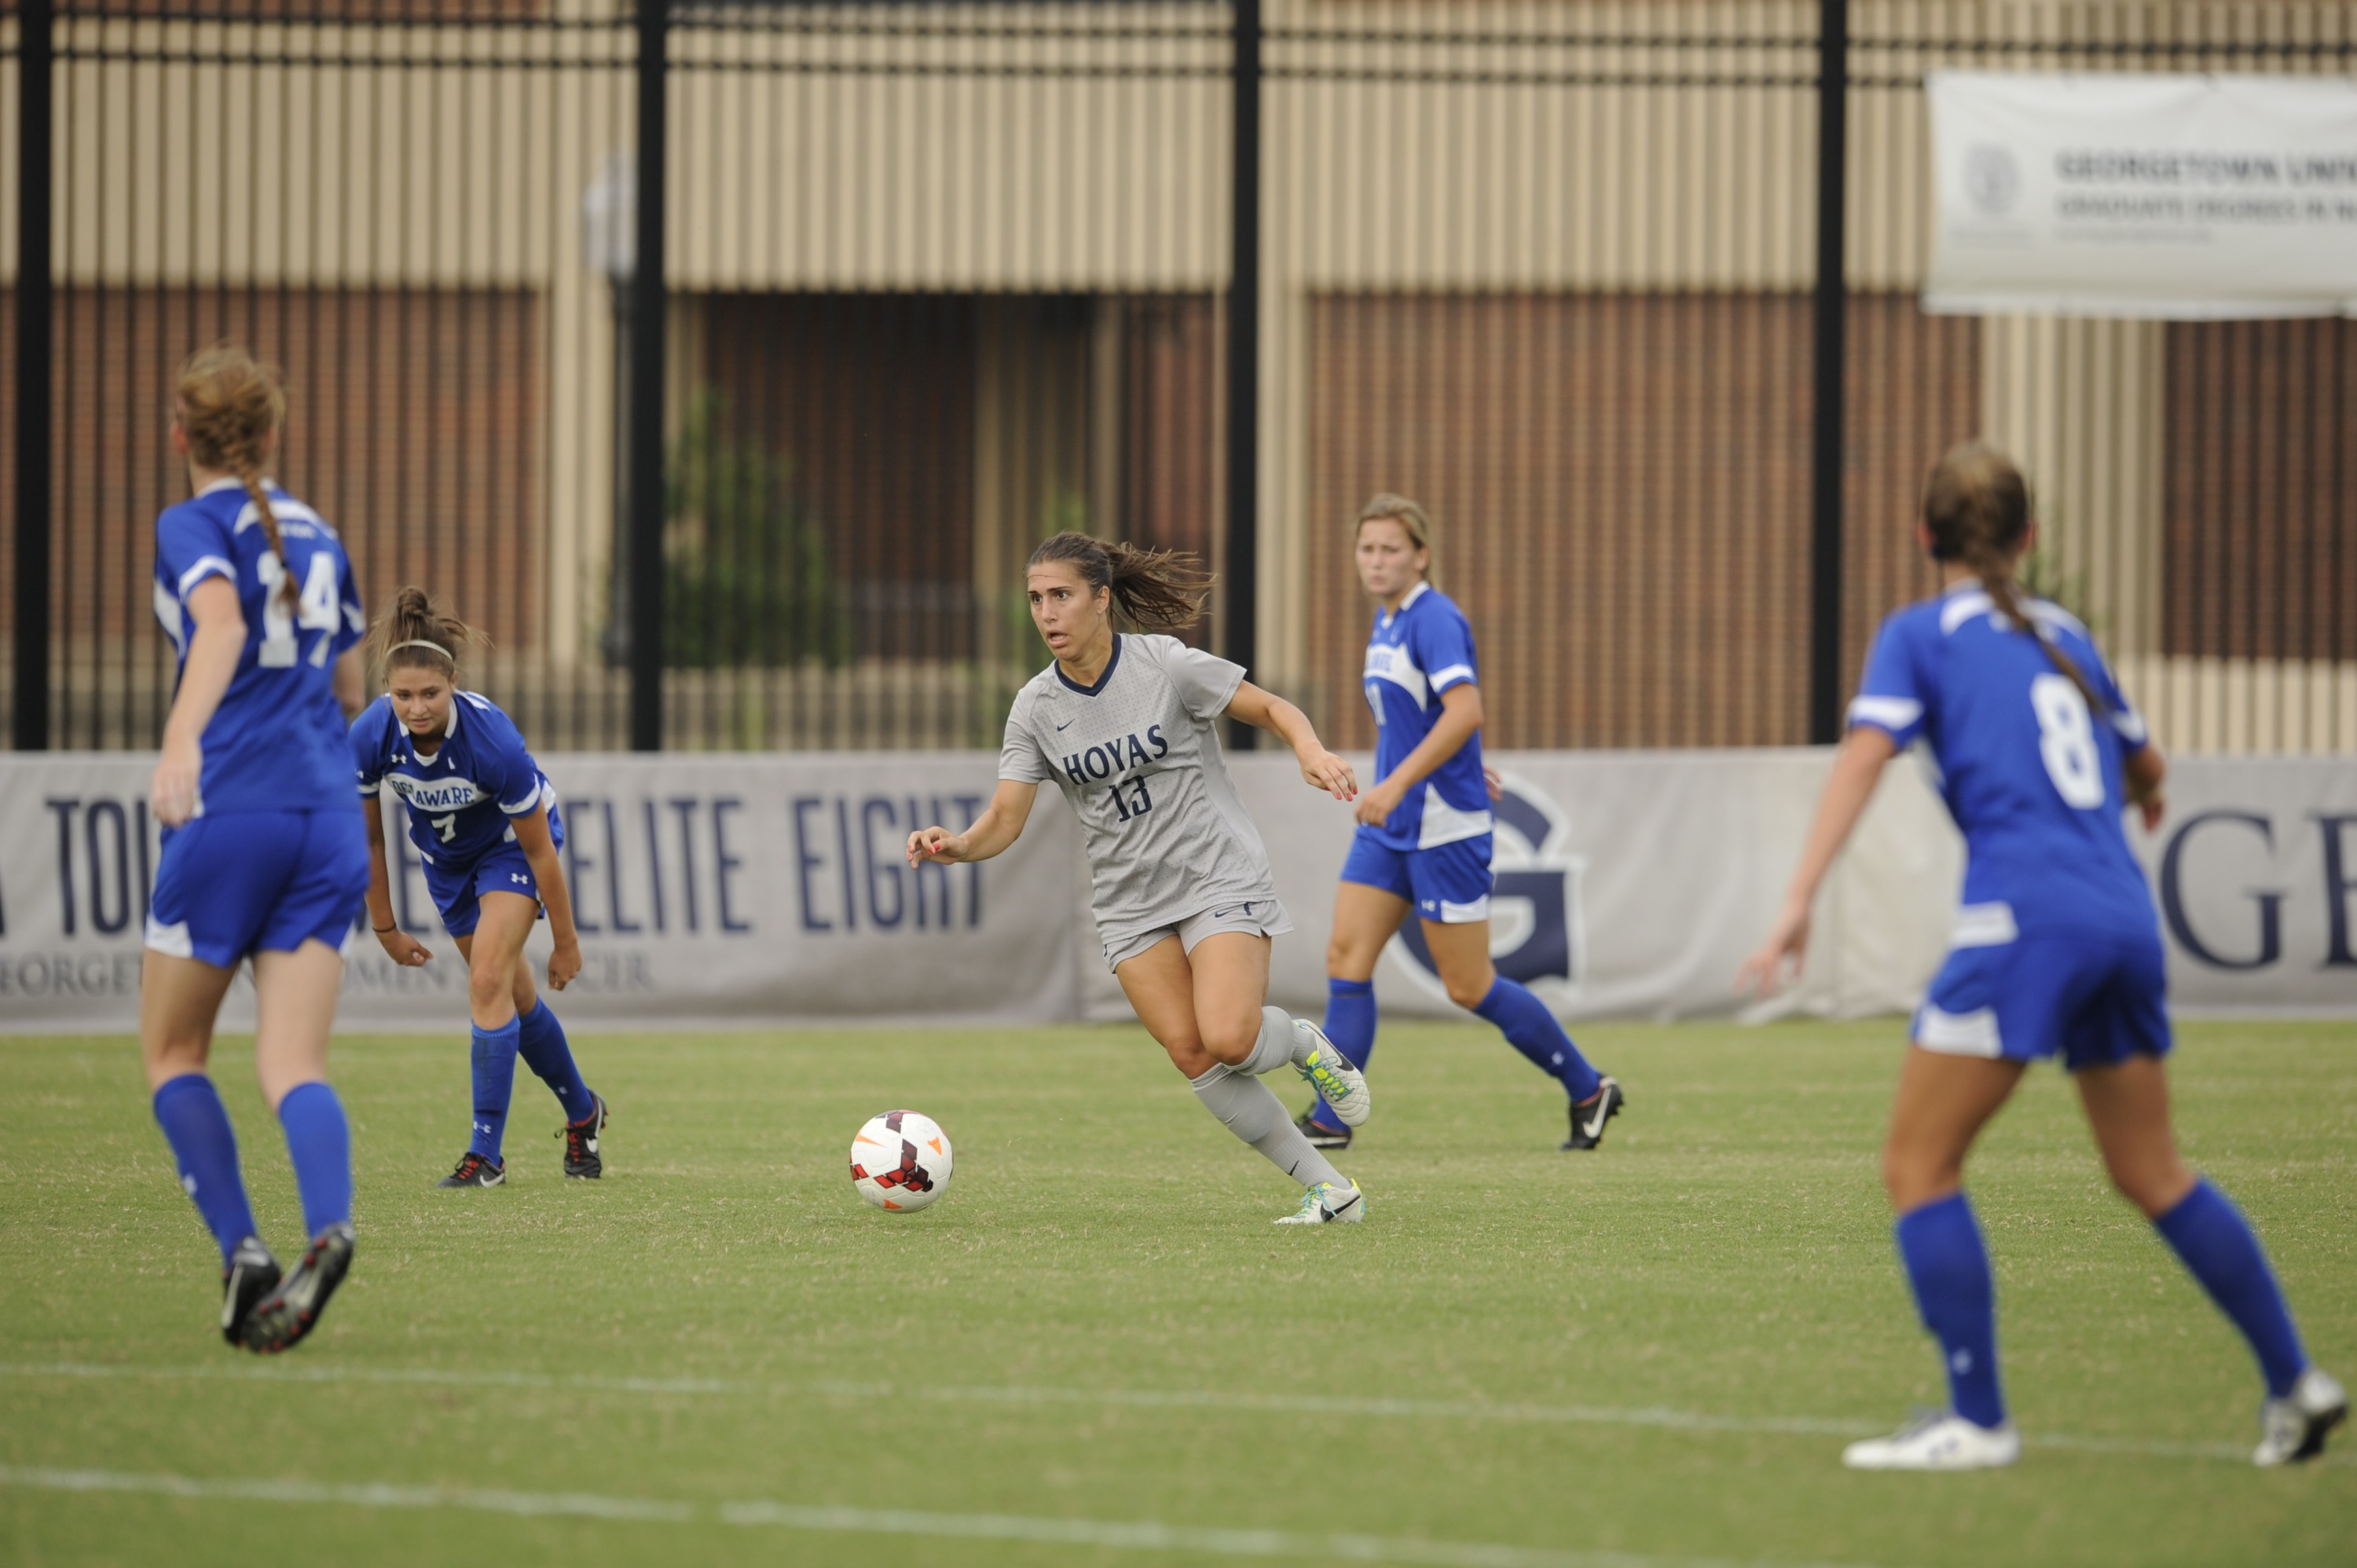 Vanessa Skrumbis was named BIG EAST Offensive Player of the Week on Monday.